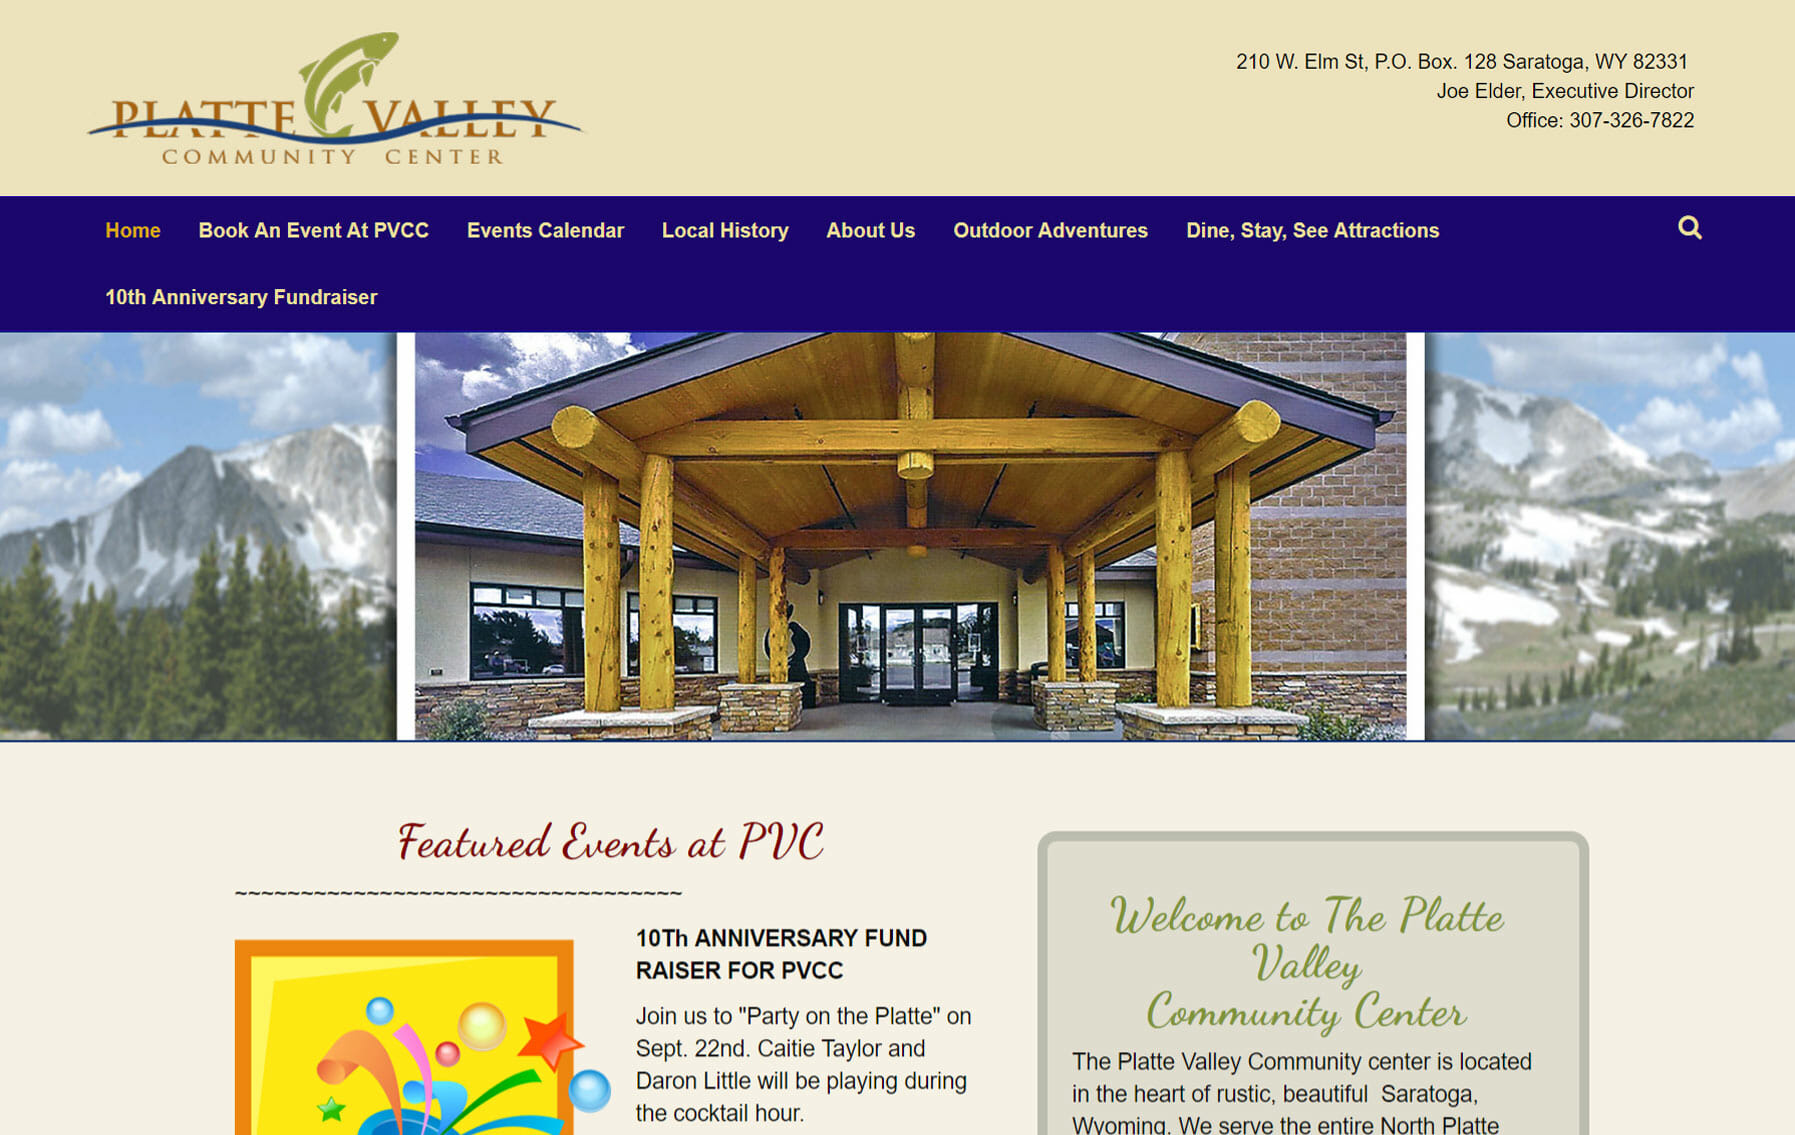 platte valley community center-portfolio